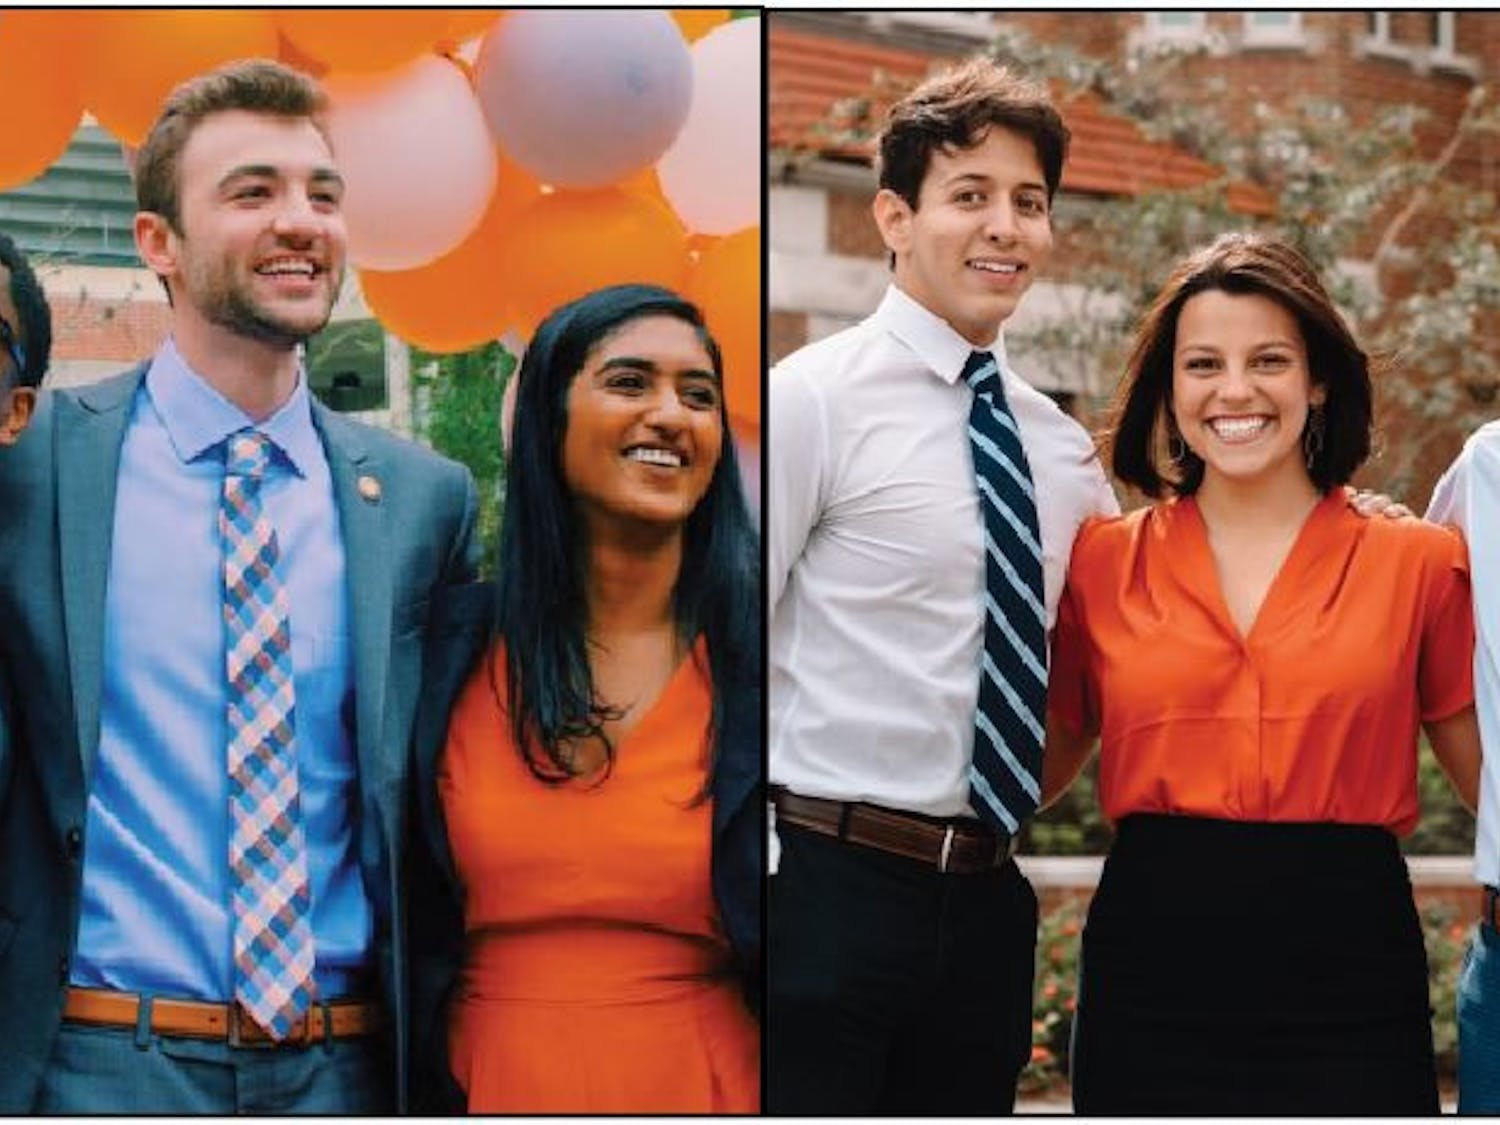 Left: Gator Party's executive candidates Trevor Pope, Lauredan Official and Jessica Jesurajan. Right: Inspire Party's executive candidates Matthew Diaz, Emily Hyden and Matthew Barocas.